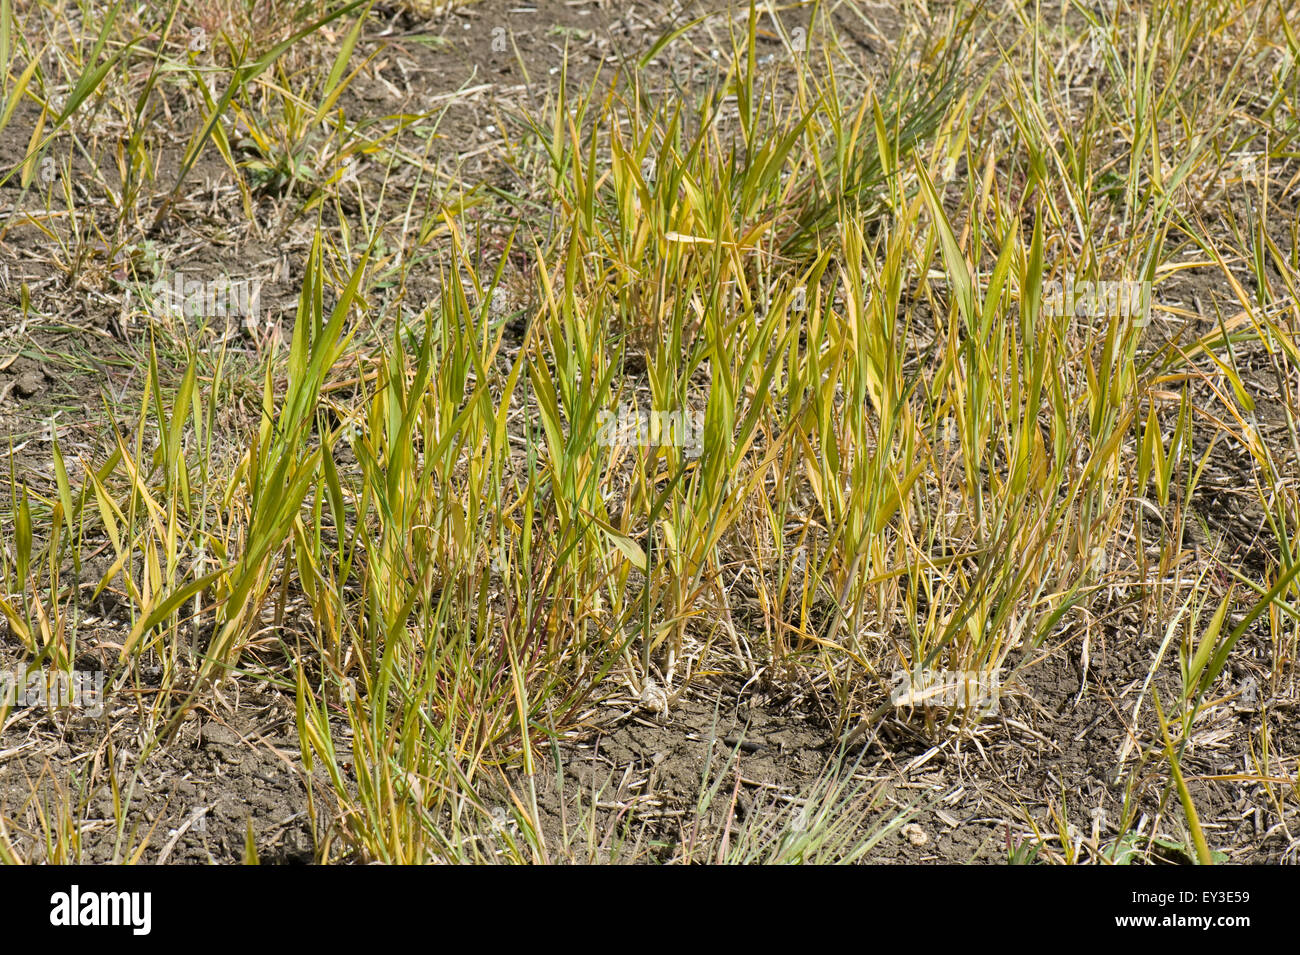 A fallow field with volunteer wheat and both annual and perennial weeds treated with glyphosate prior to cultivation, - Stock Image